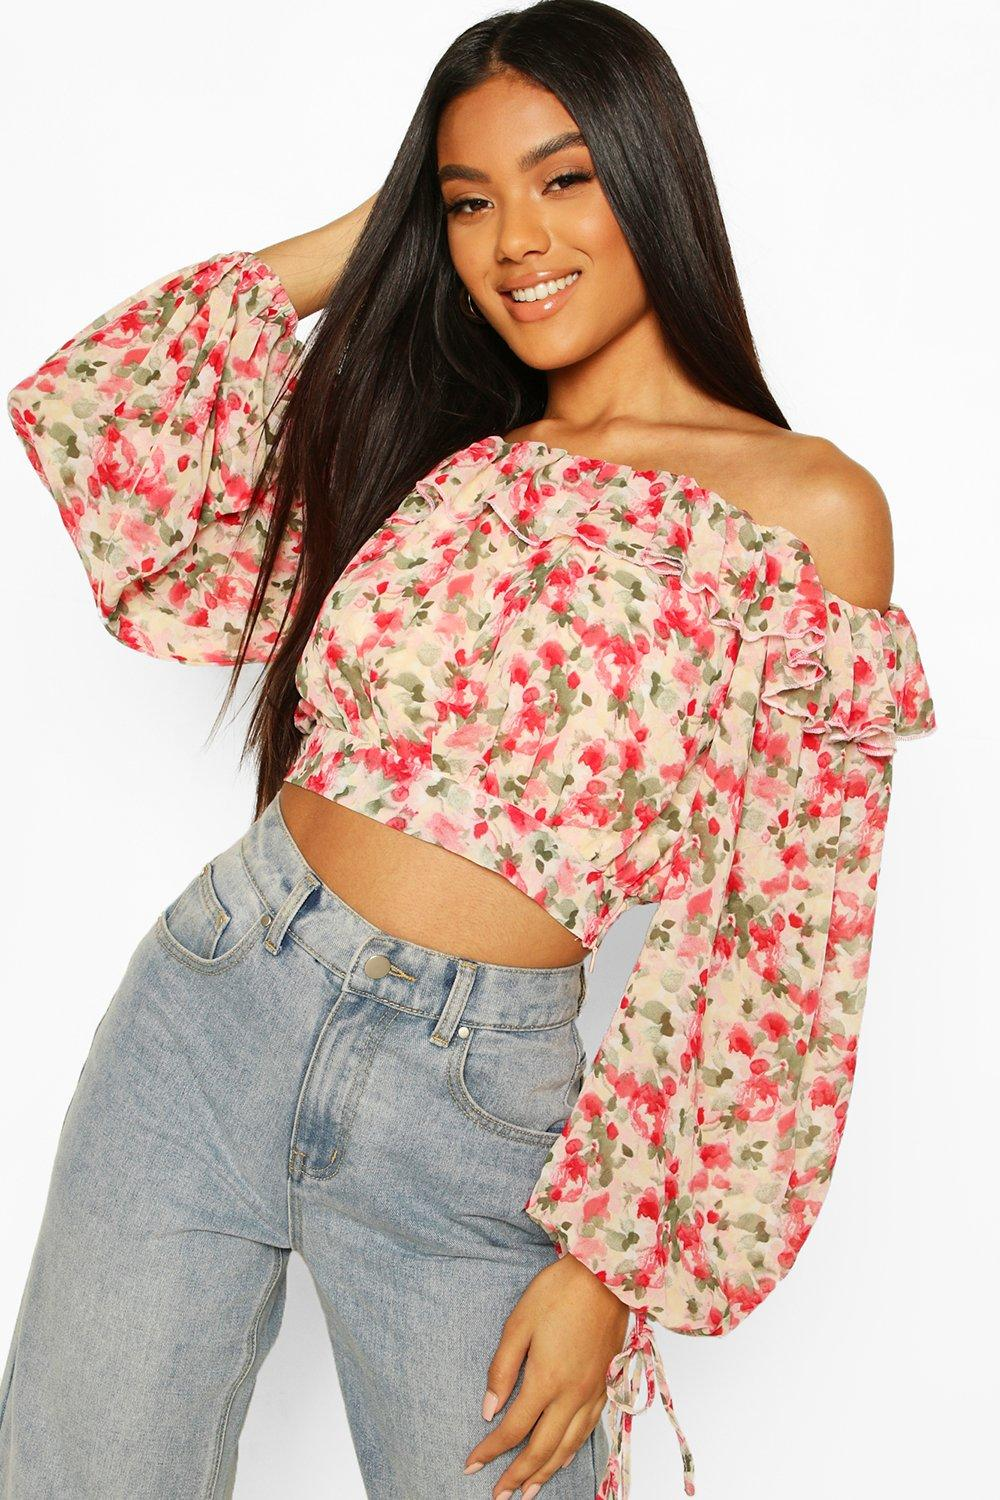 boohoo Womens Woven Floral Ruffle Off The Shoulder Top - Pink - 14, Pink